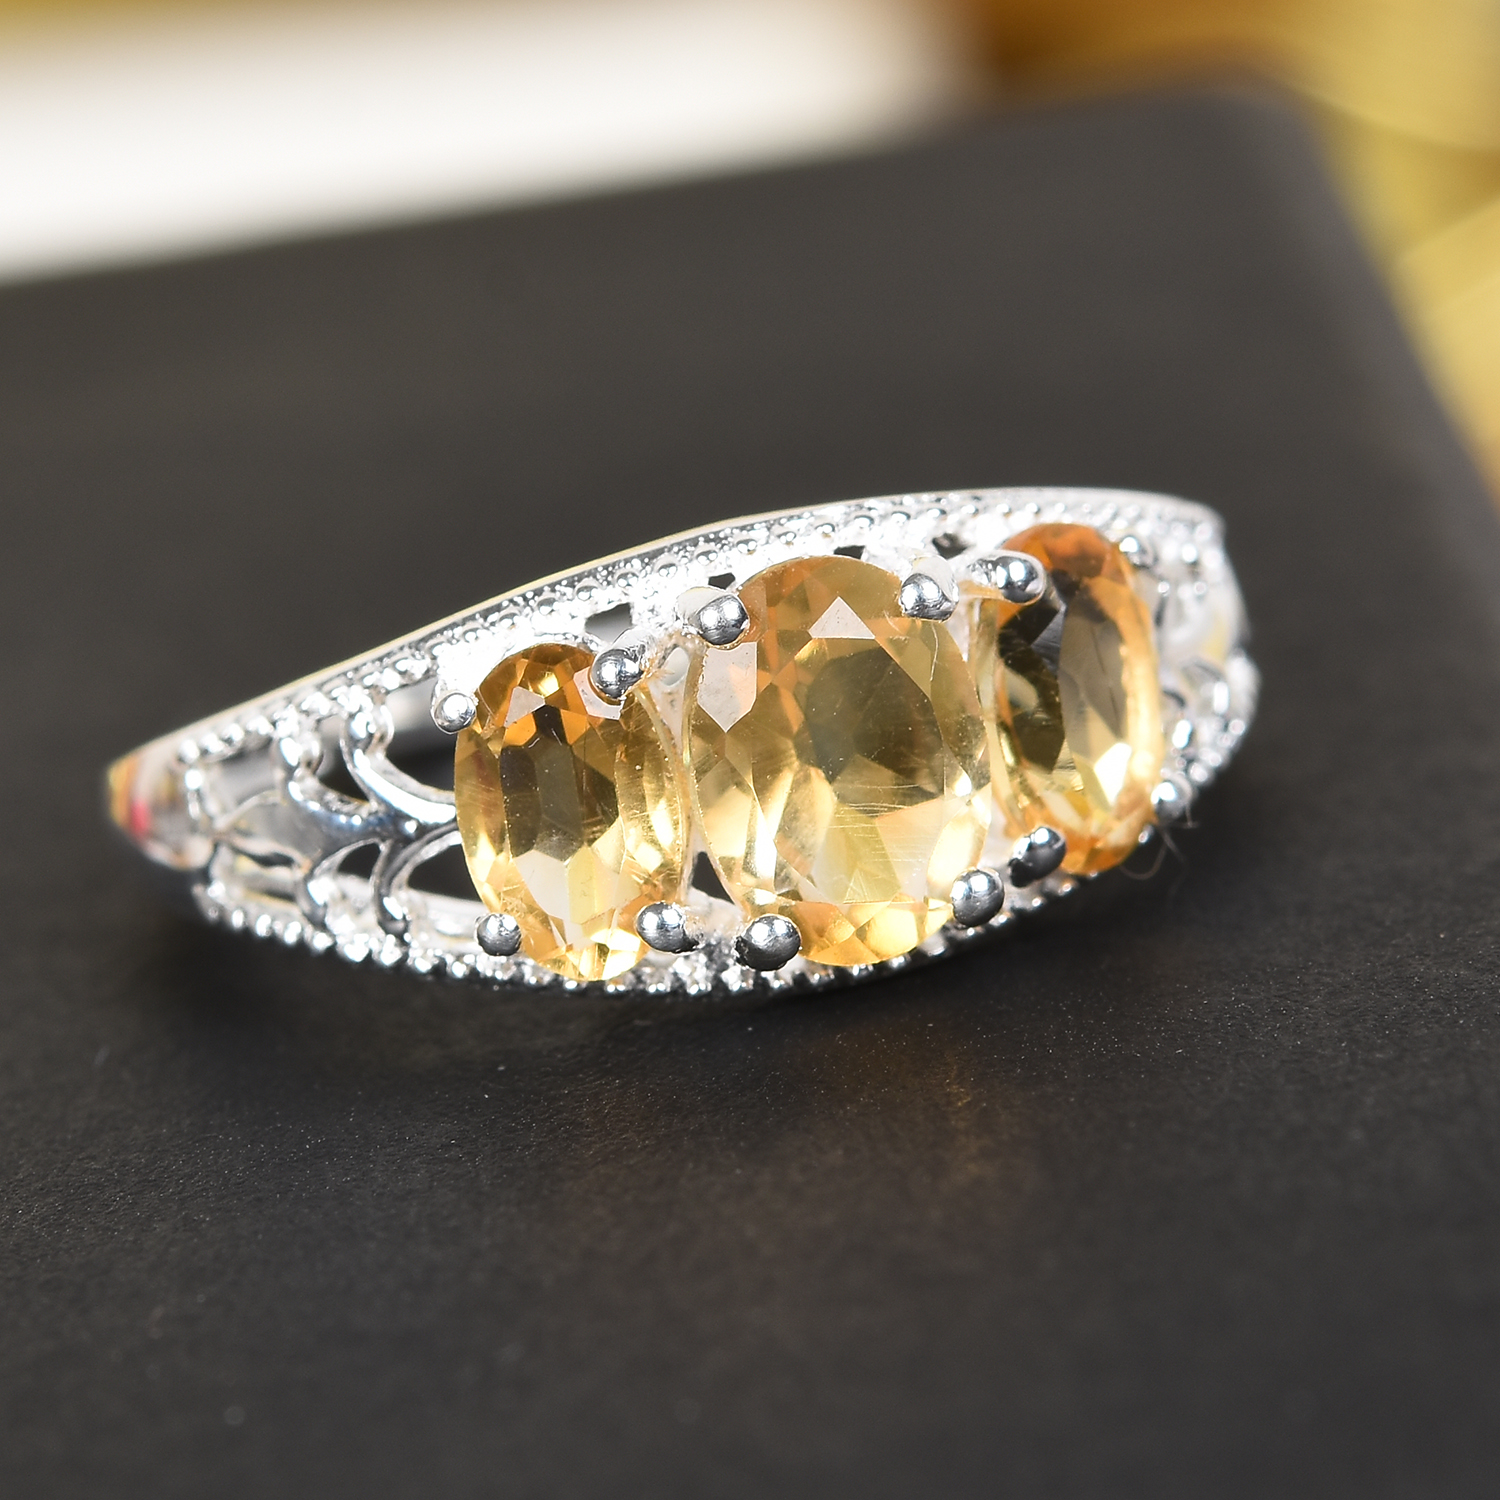 925 Sterling Silver Citrine Statement Ring Jewelry Gift for Women Size 8 Ct 1.6